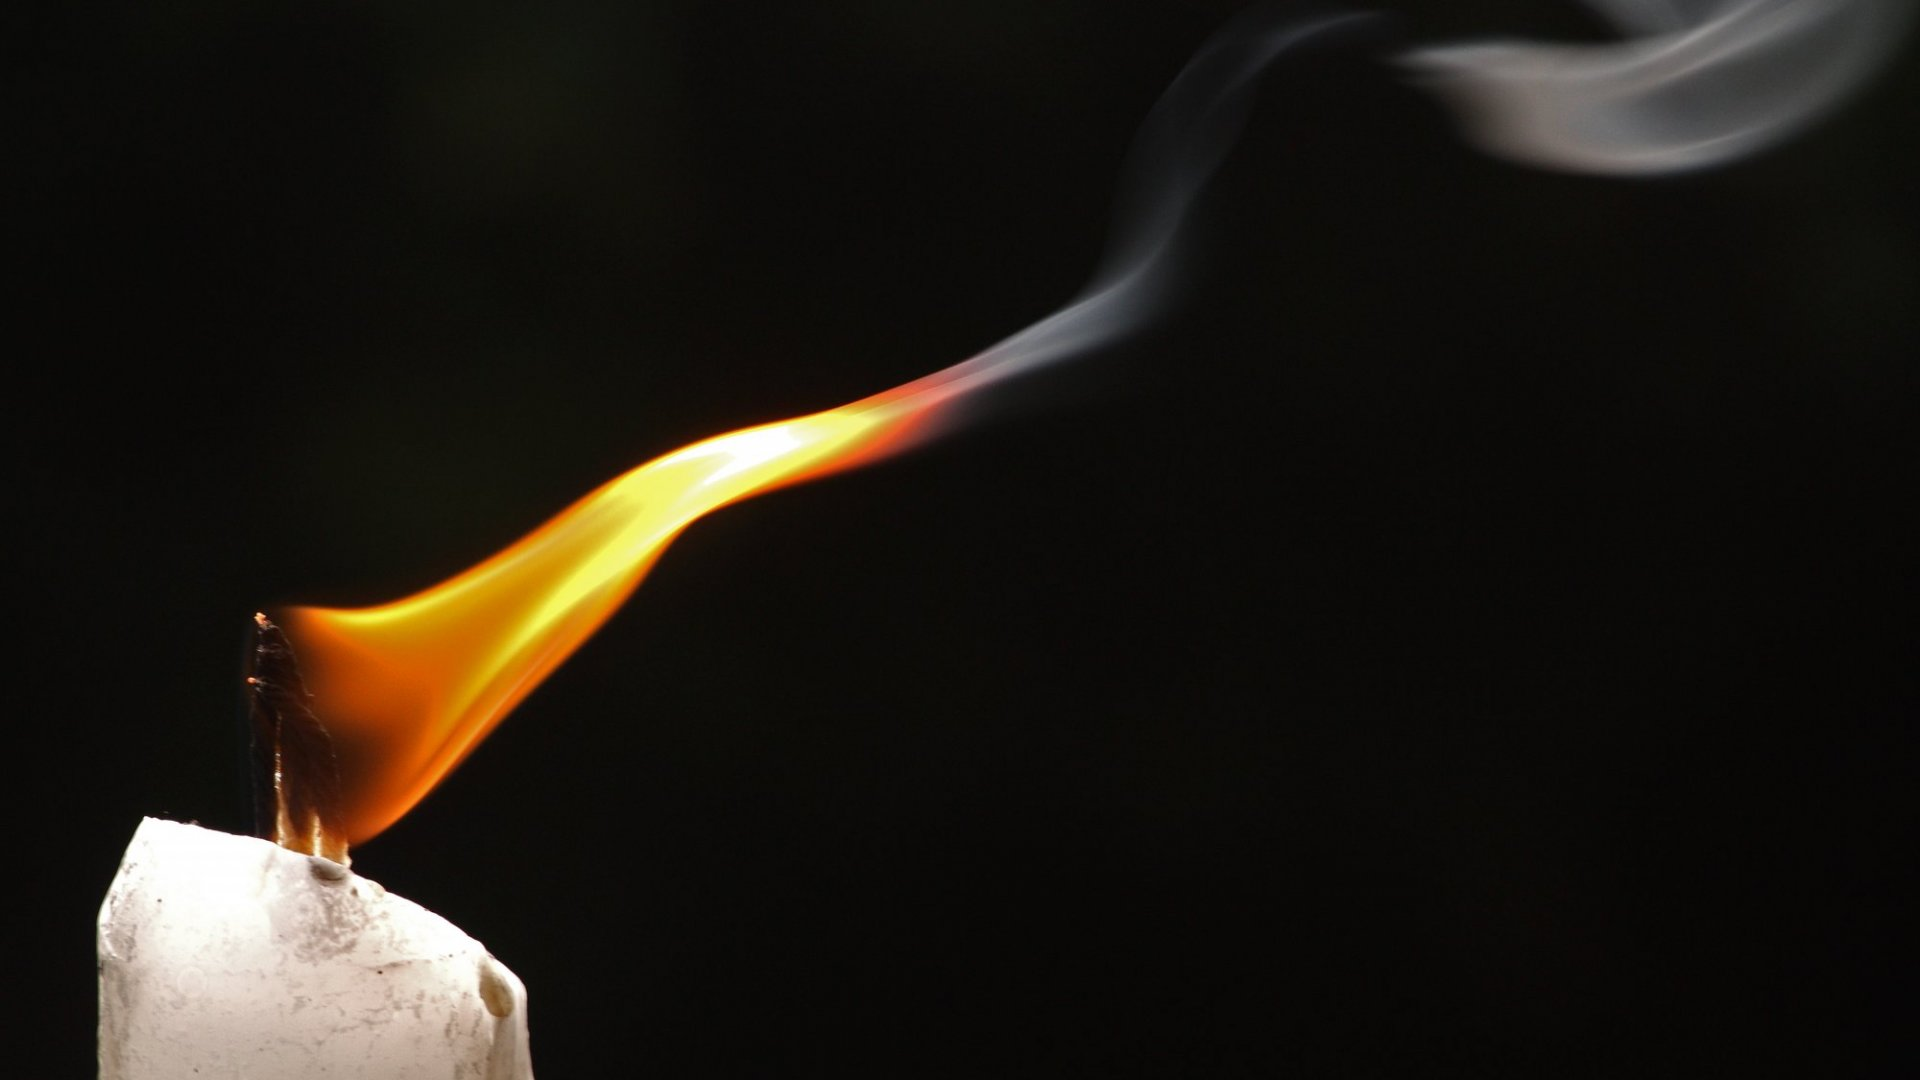 Why Perfectionists Are More Prone to Burnout at Work